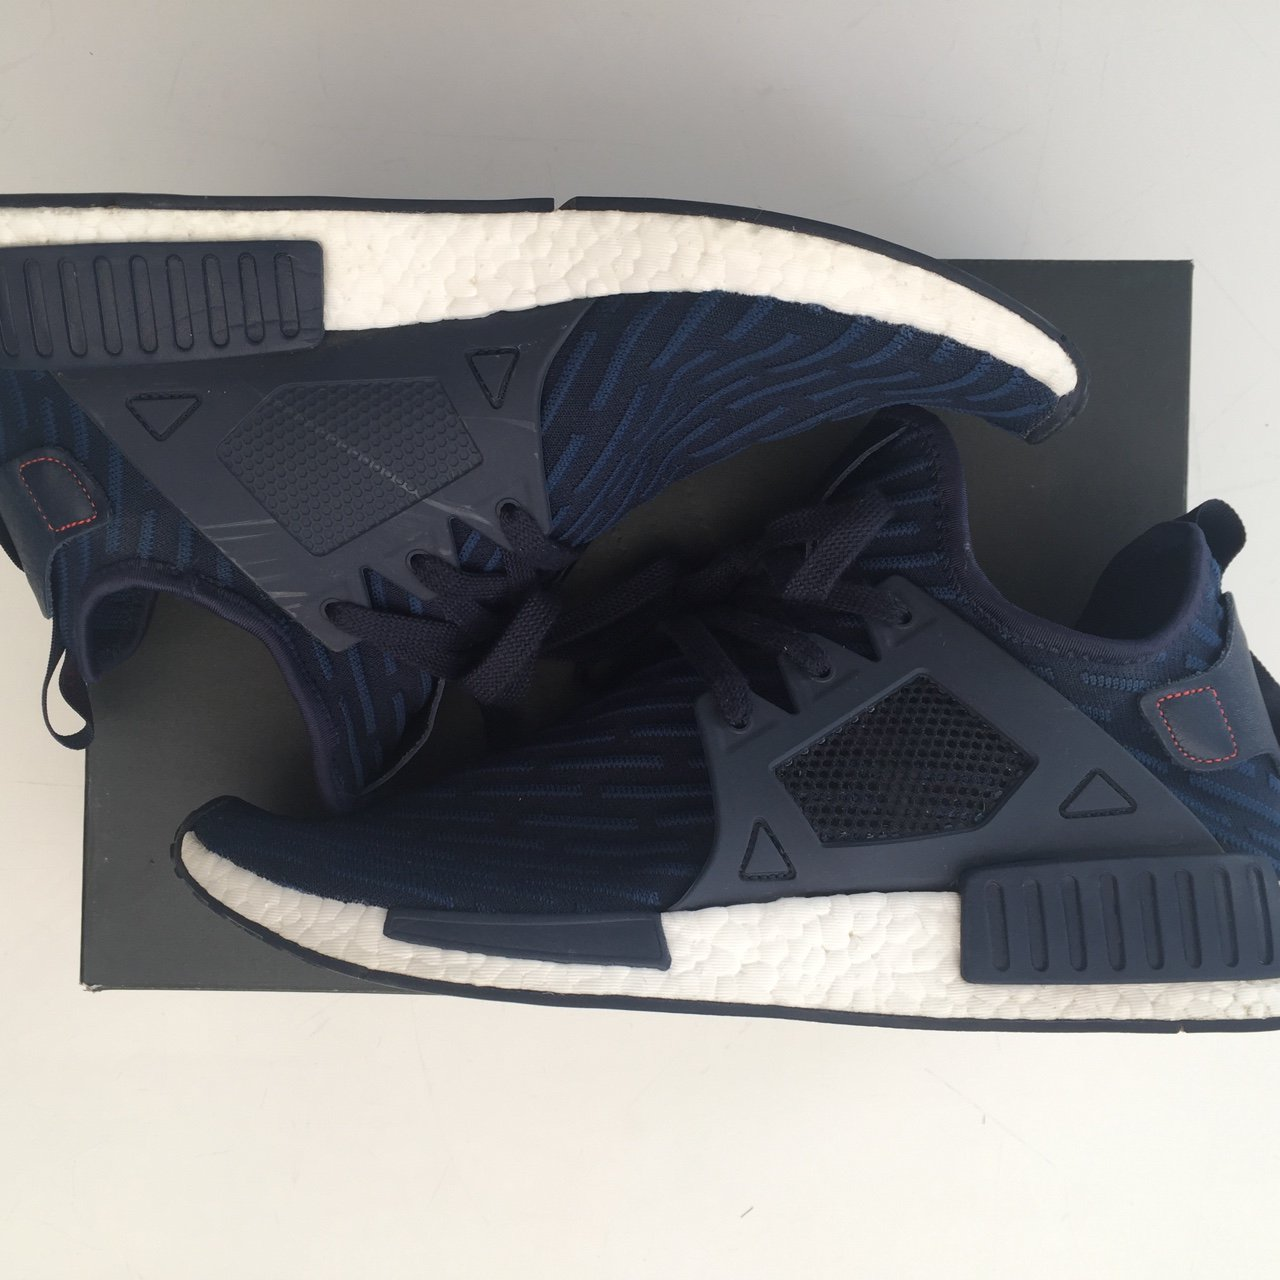 Adidas NMD XR1 for sale in size UK 11. The shoes are in me - Depop 10061be61